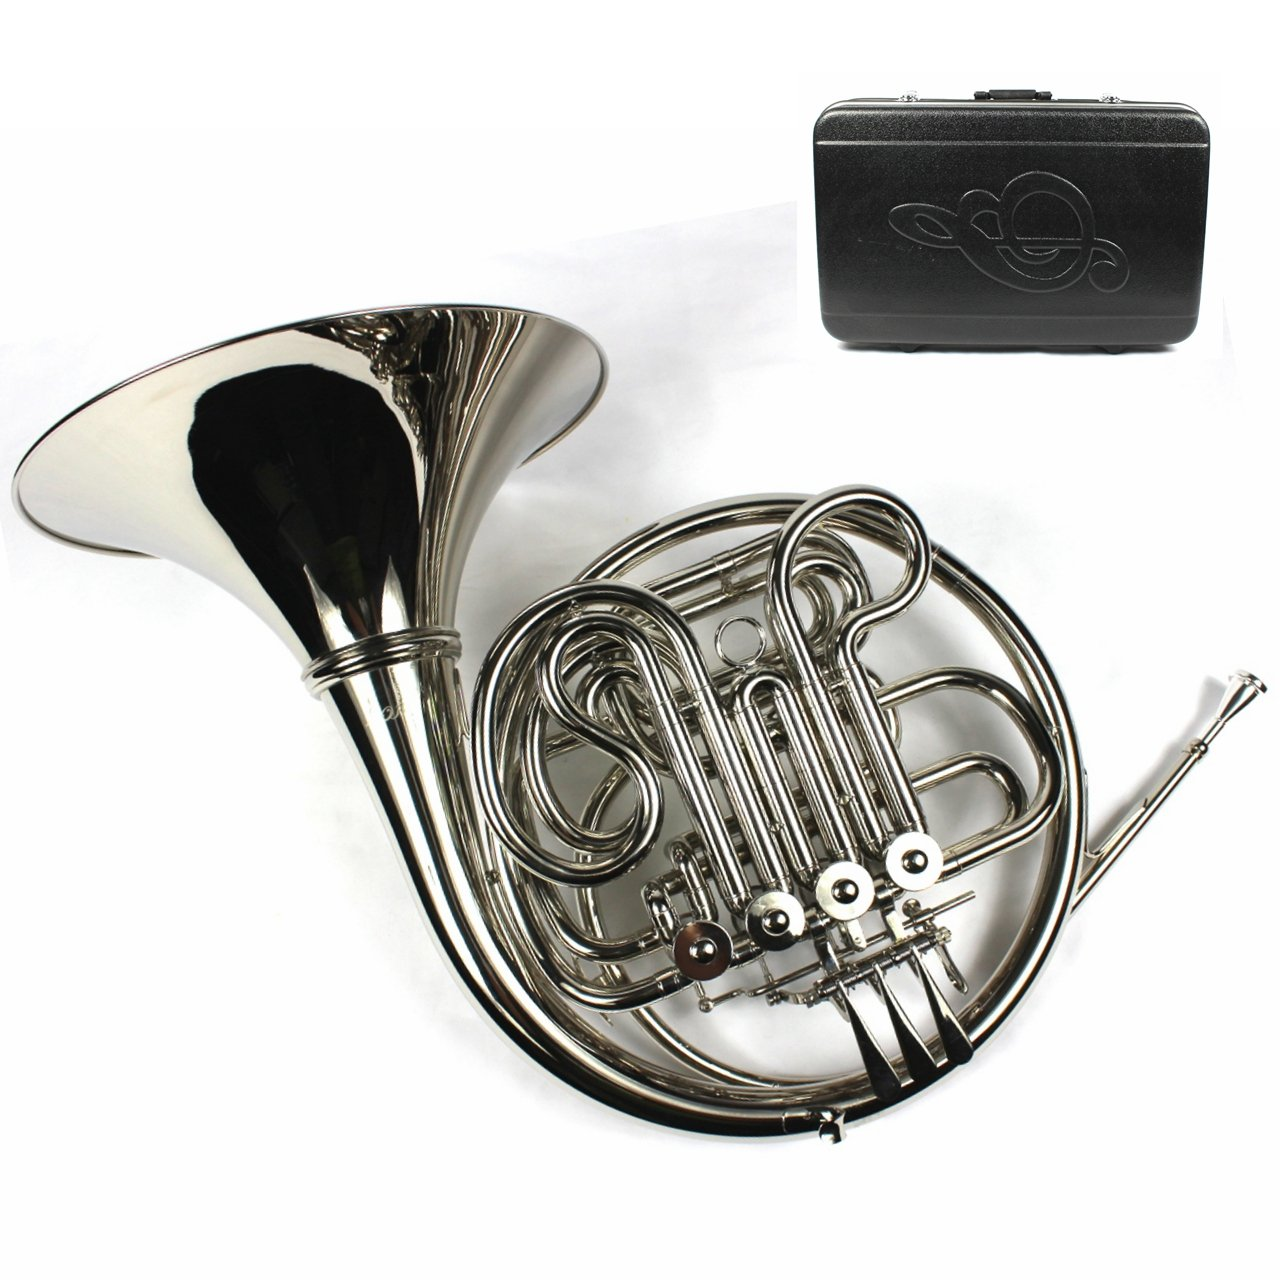 Monel Rotors Bb/F 4 Keys Double French Horn w/Case & Mouthpiece-Nickel Plated Finish by Moz